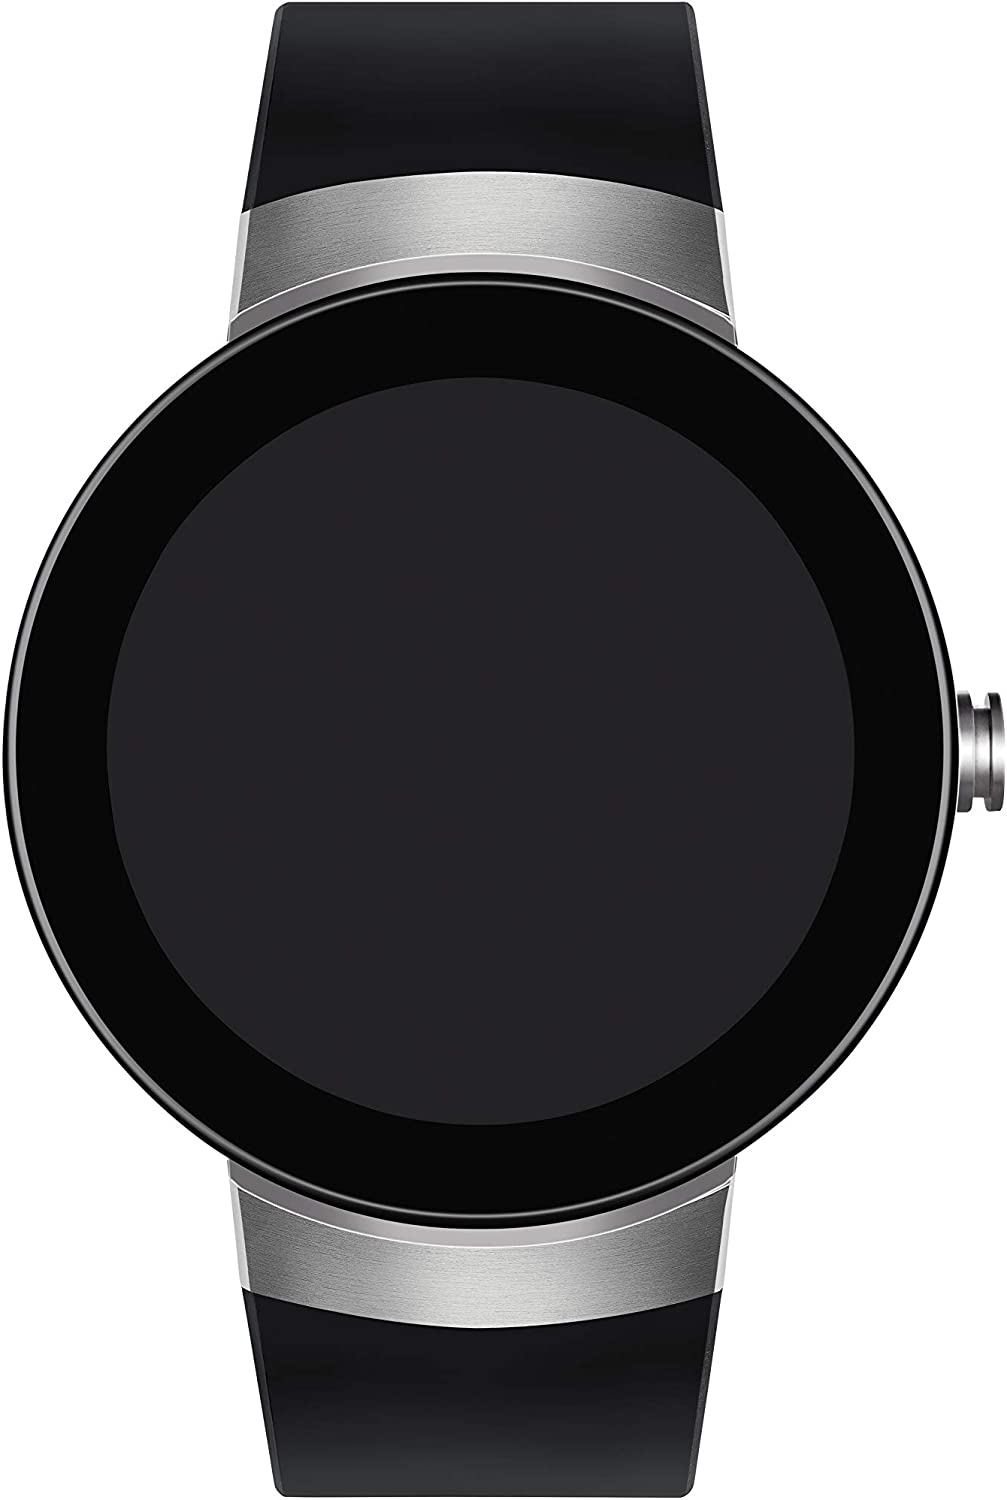 Movado Connect Digital Smart Module Stainless Steel Smartwatch, Silver/Black Strap (Model 3660016)